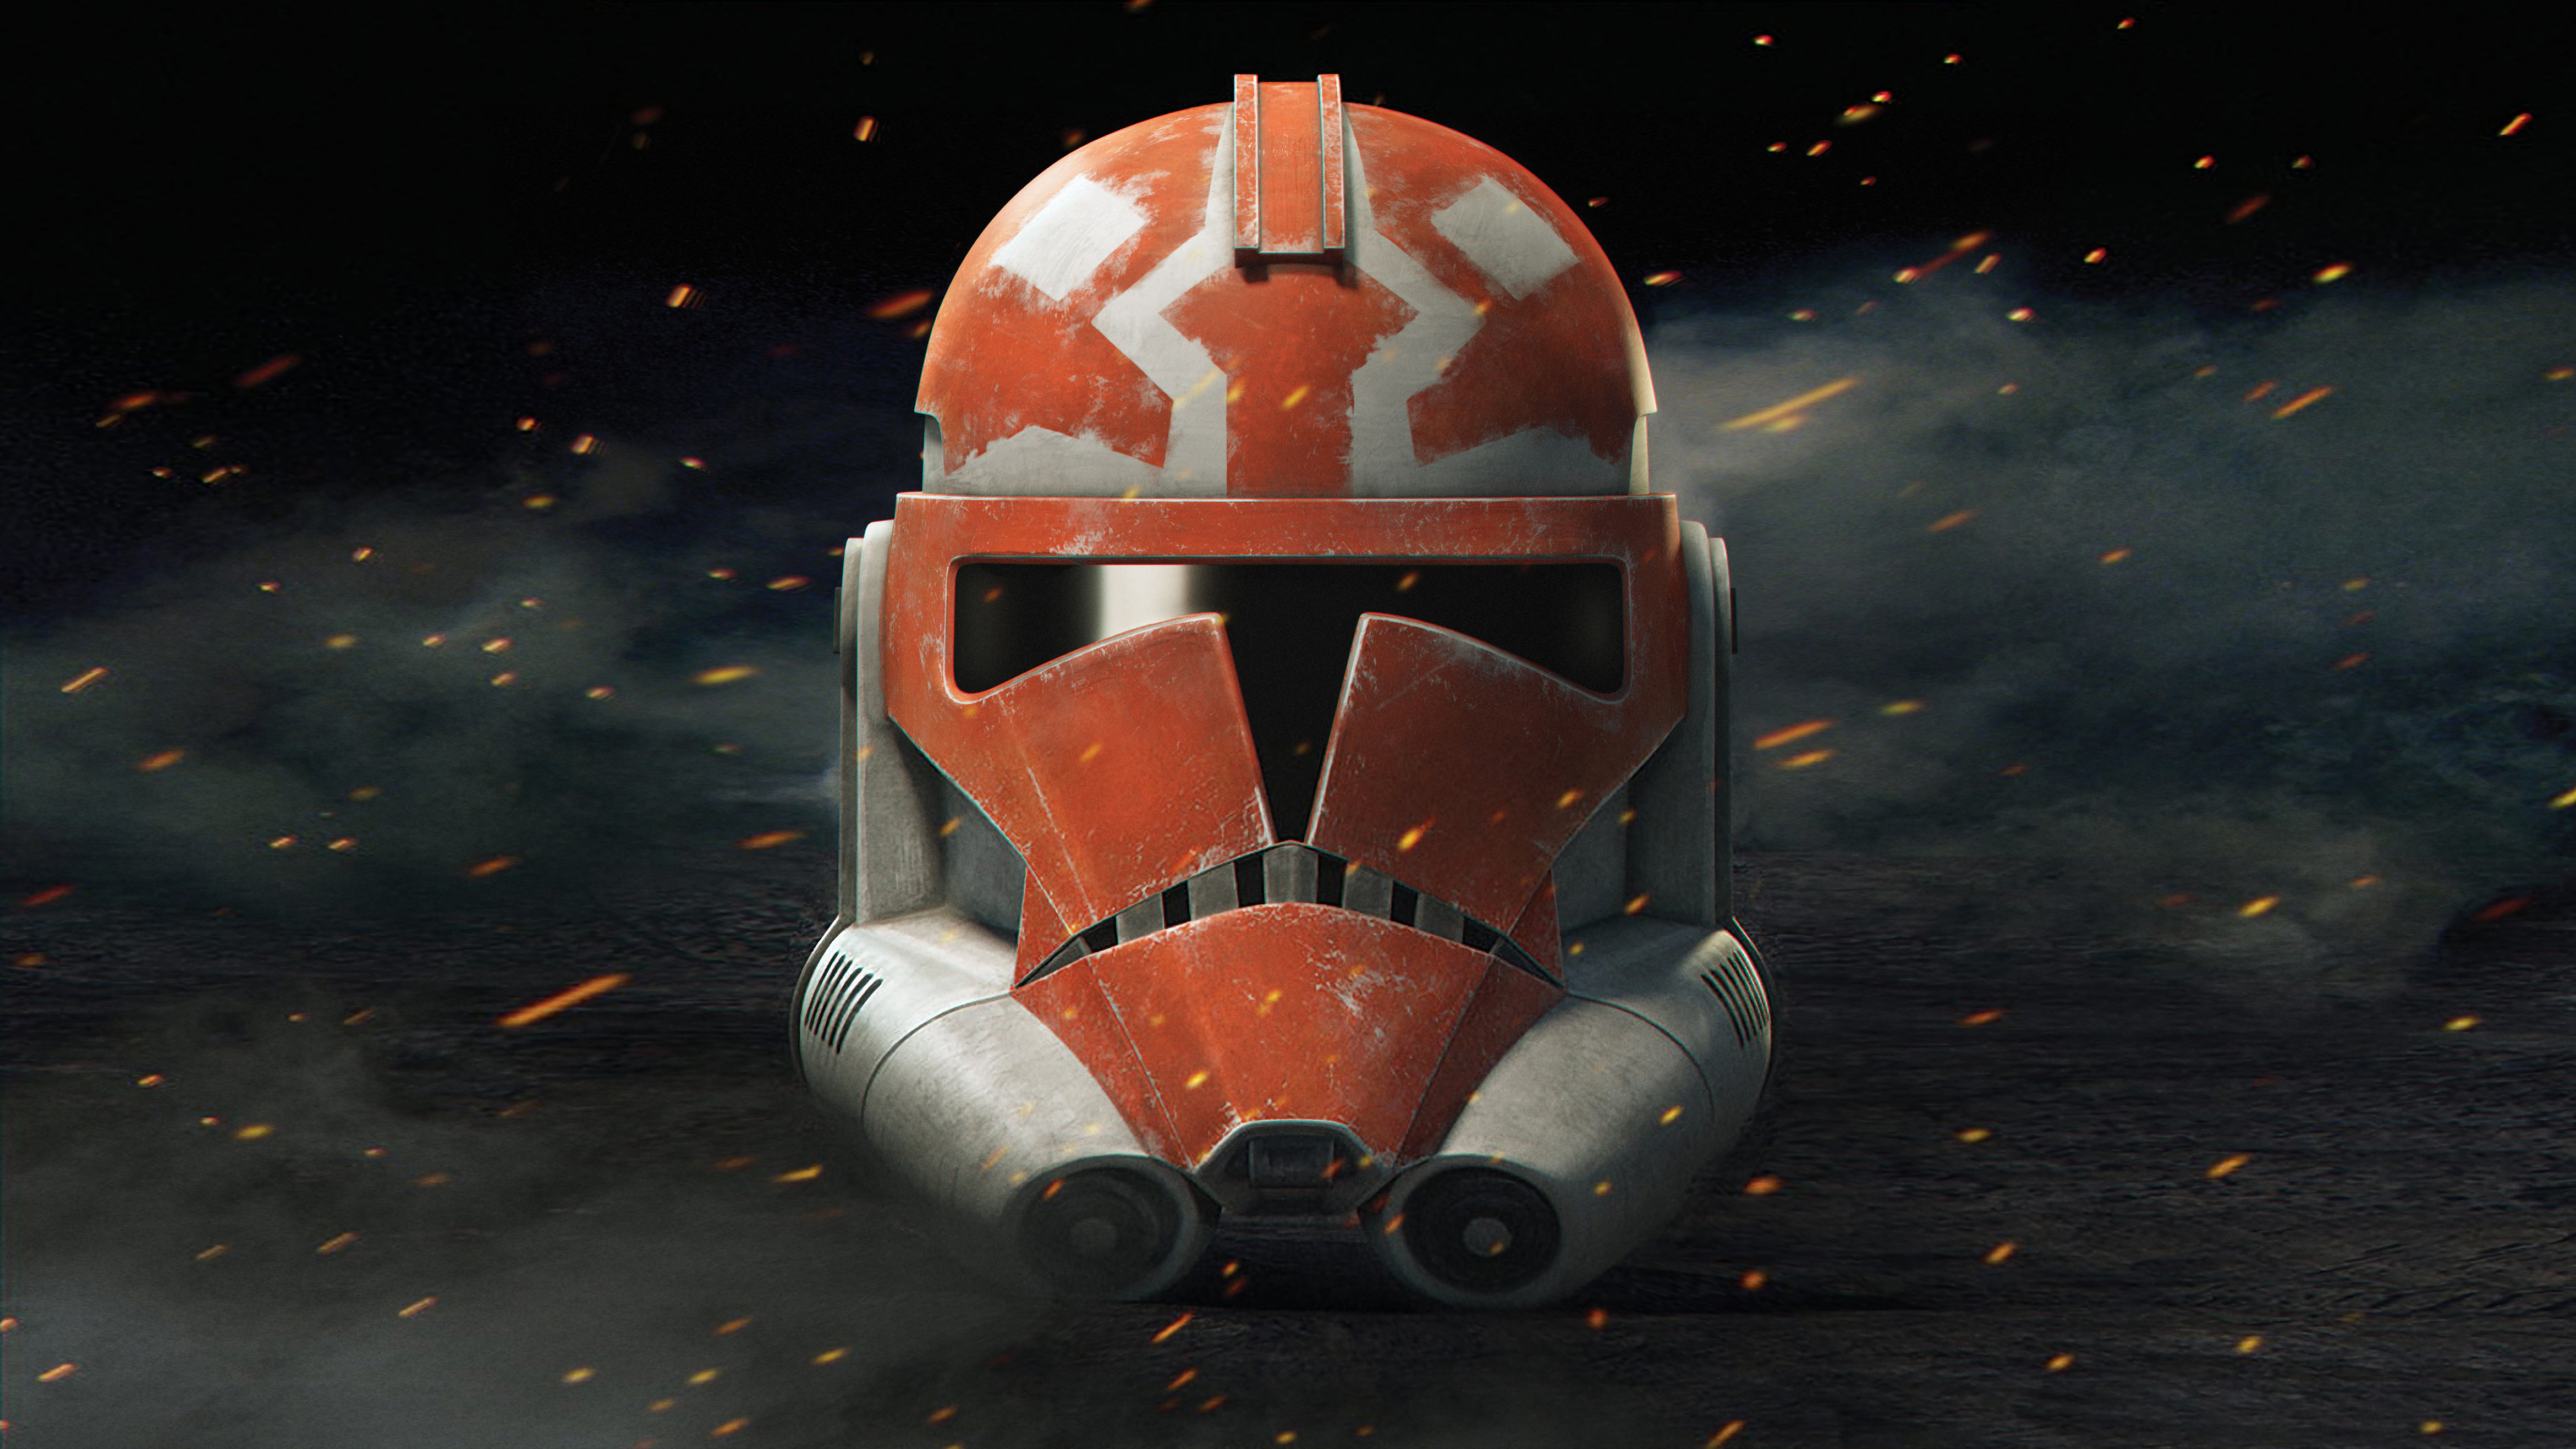 4k Resolution Image Of Helmet From Clonewarssaved Poster Jedi News